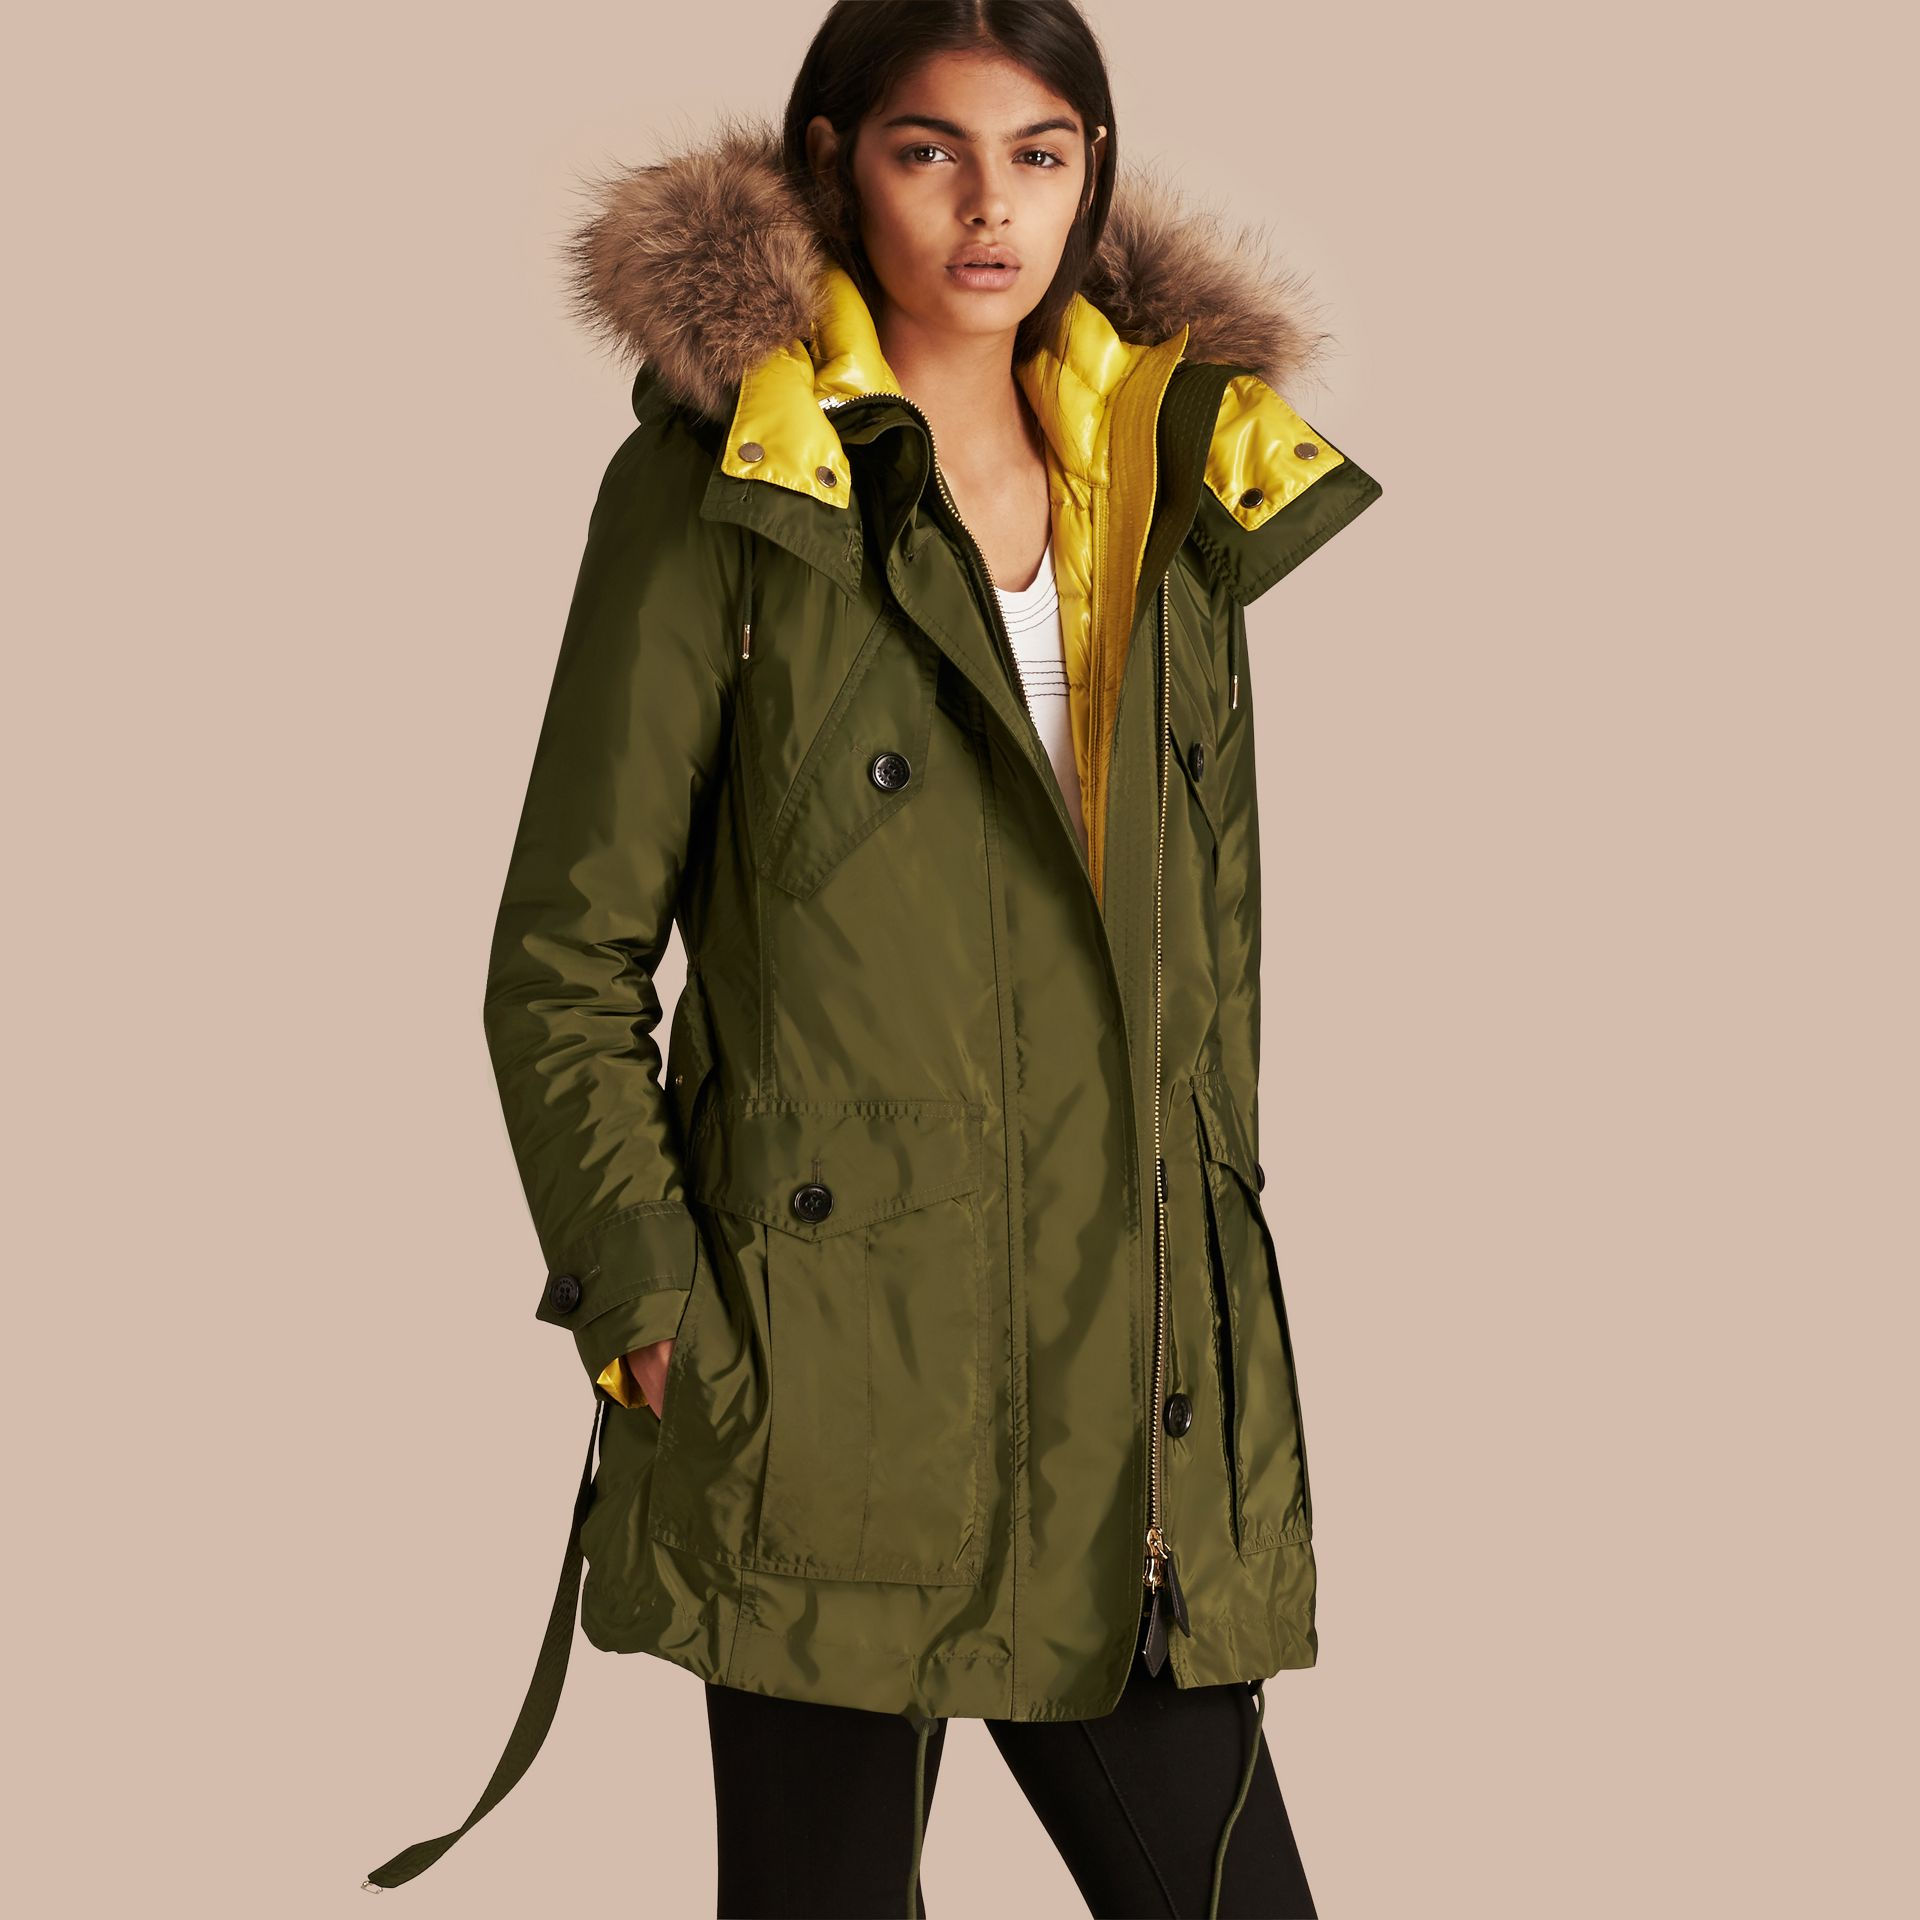 Fur-trimmed Parka with Detachable Down-filled Jacket Bright Moss Green - gallery image 1